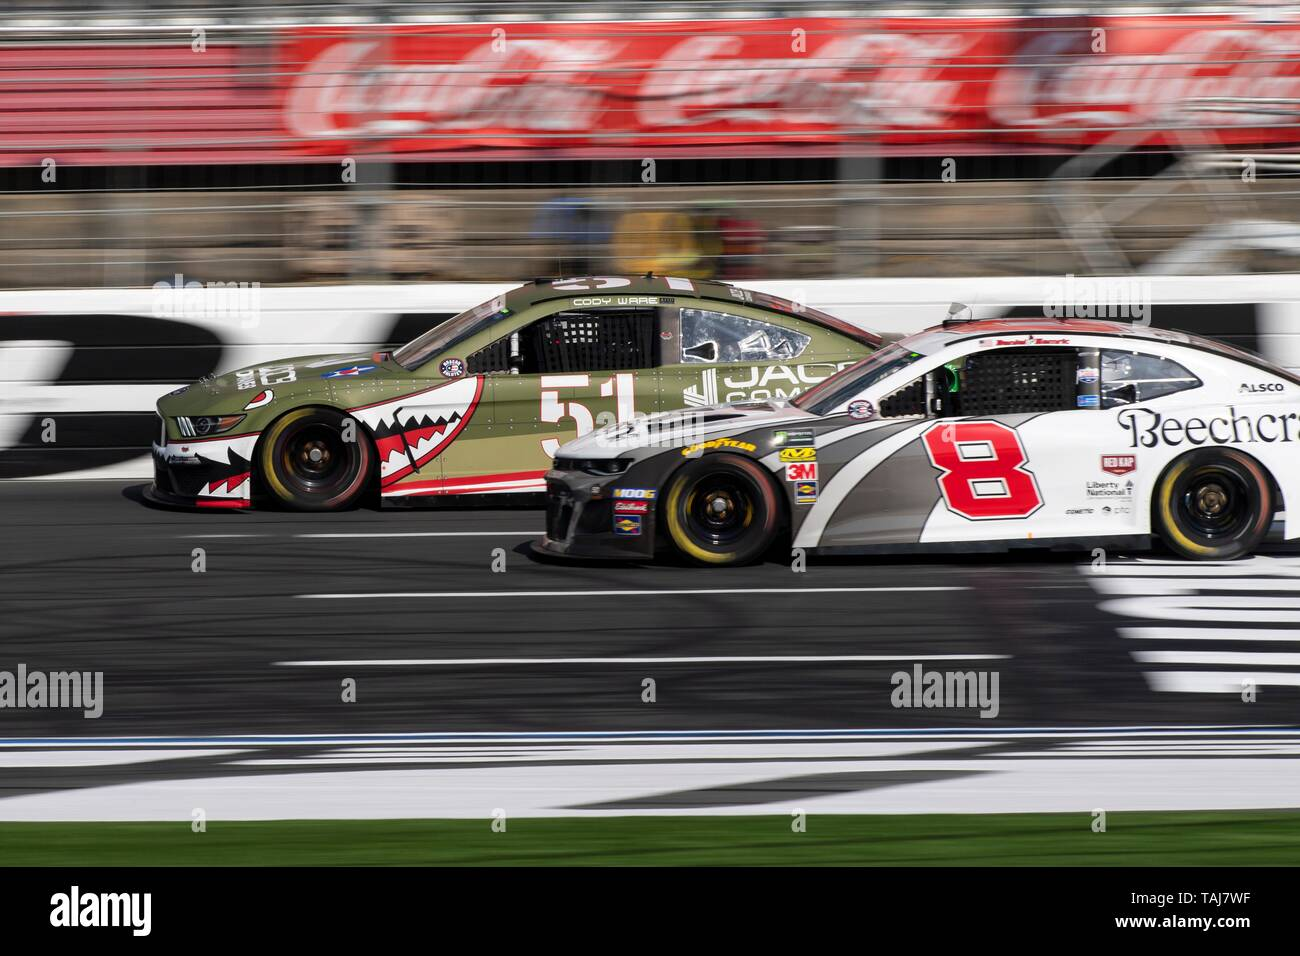 NASCAR driver Cody War driving #51 edges out Daniel Hemric, #8 in qualifying for the Coca Cola 600 at Charlotte Motor Speedway May 25, 2019 in Concord, N.C. Credit: Planetpix/Alamy Live News - Stock Image